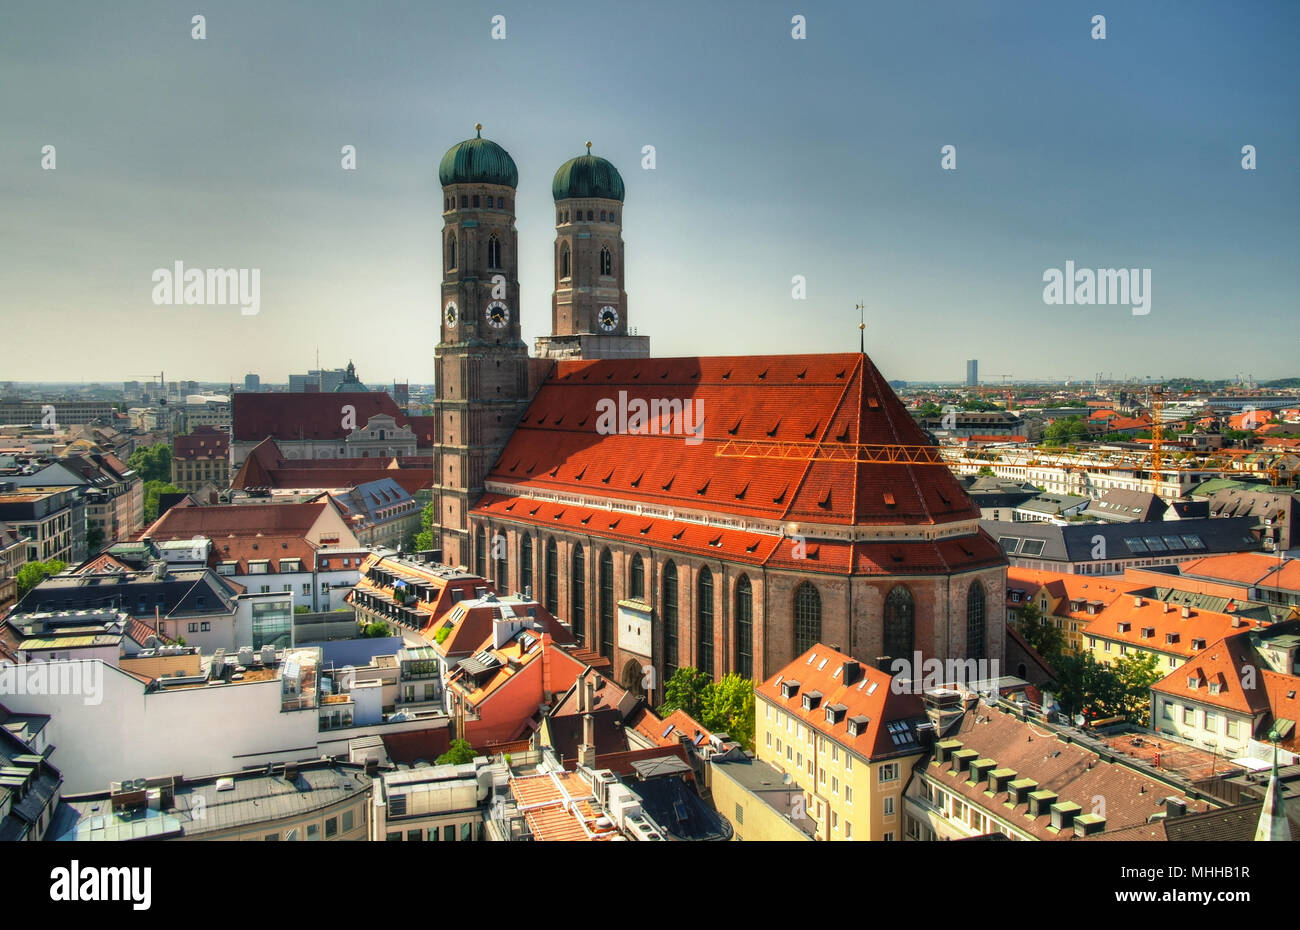 Aerial view to Frauenkirche church Munich, Germany - Stock Image